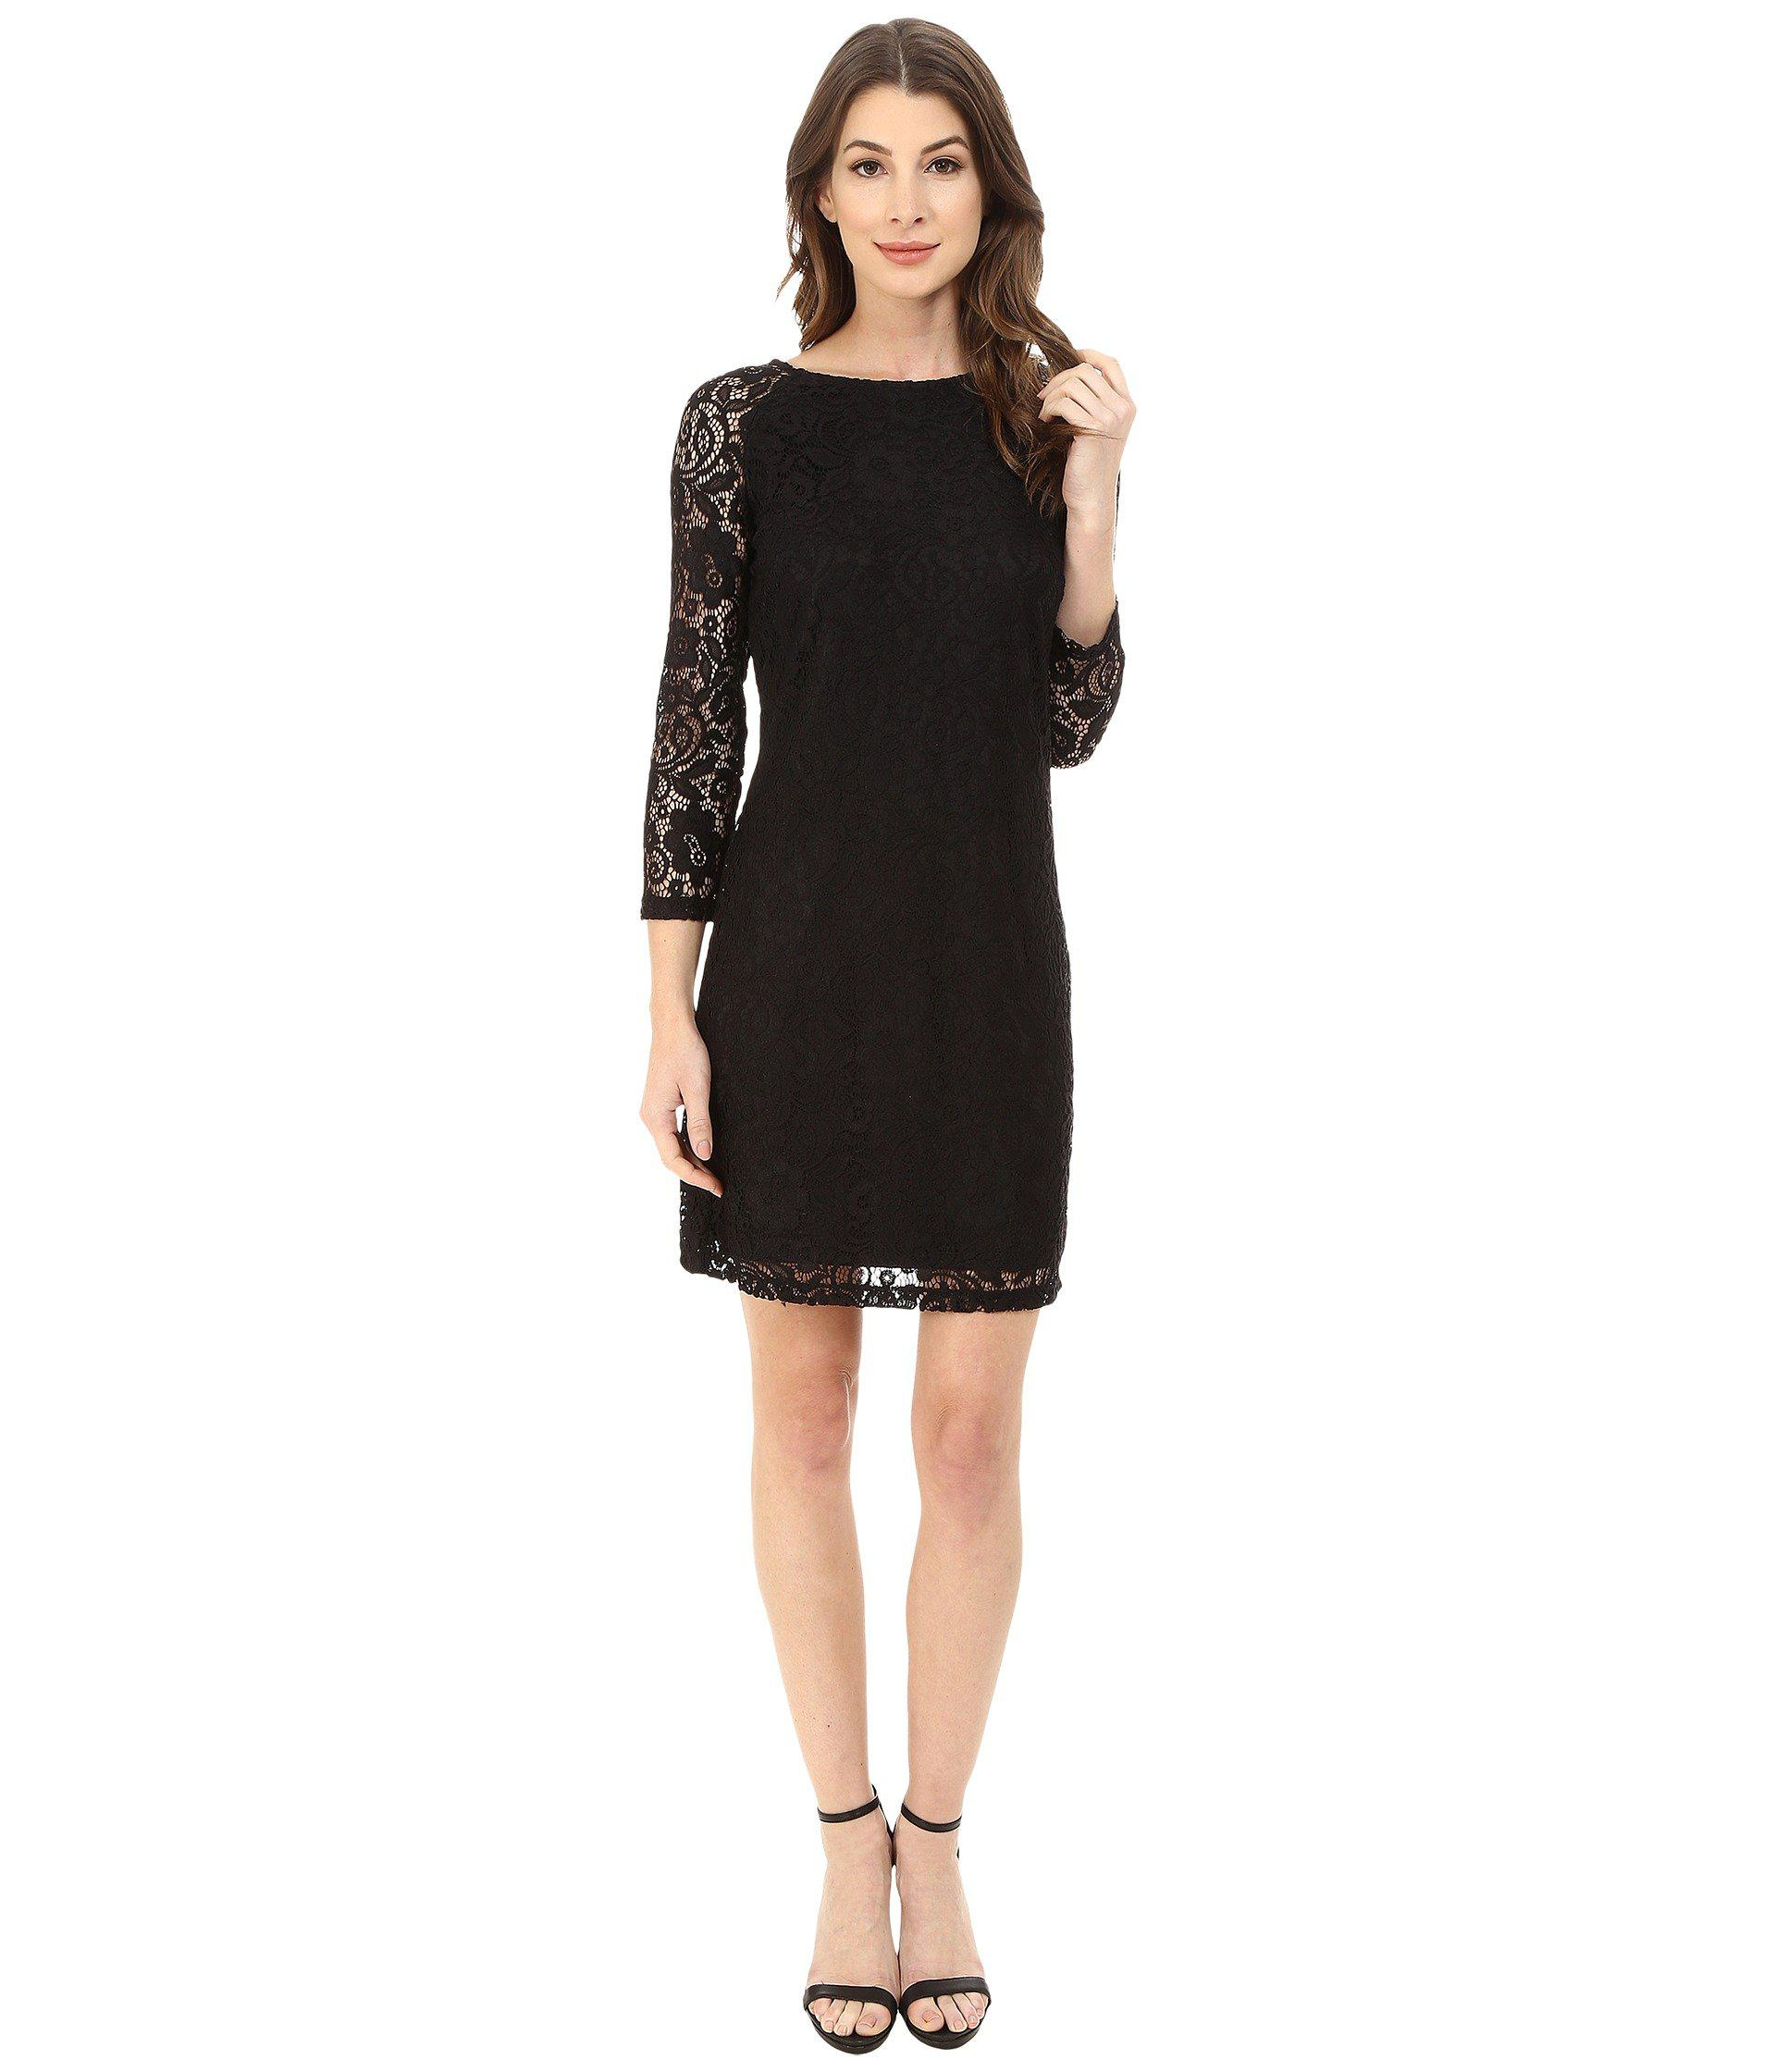 Lyst - Laundry by Shelli Segal Lace T-body Dress in Black - Save 50% 27ee0348feec